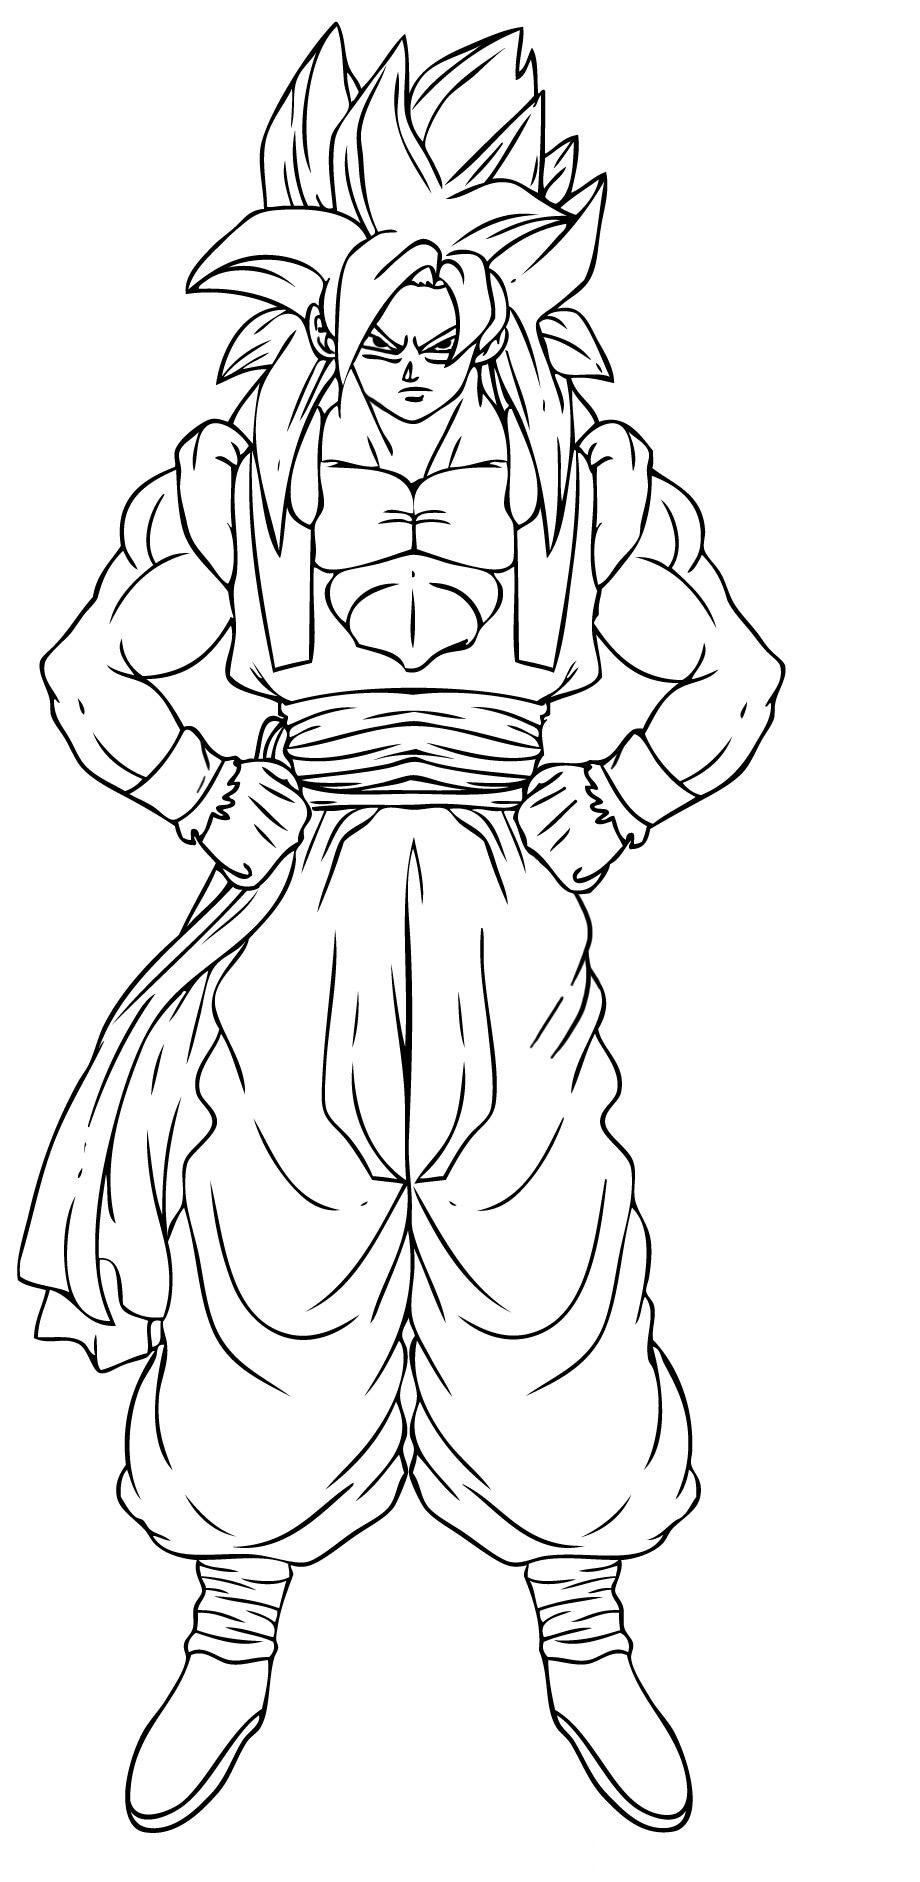 coloring pictures of goku printable goku coloring pages for kids cool2bkids goku pictures of coloring